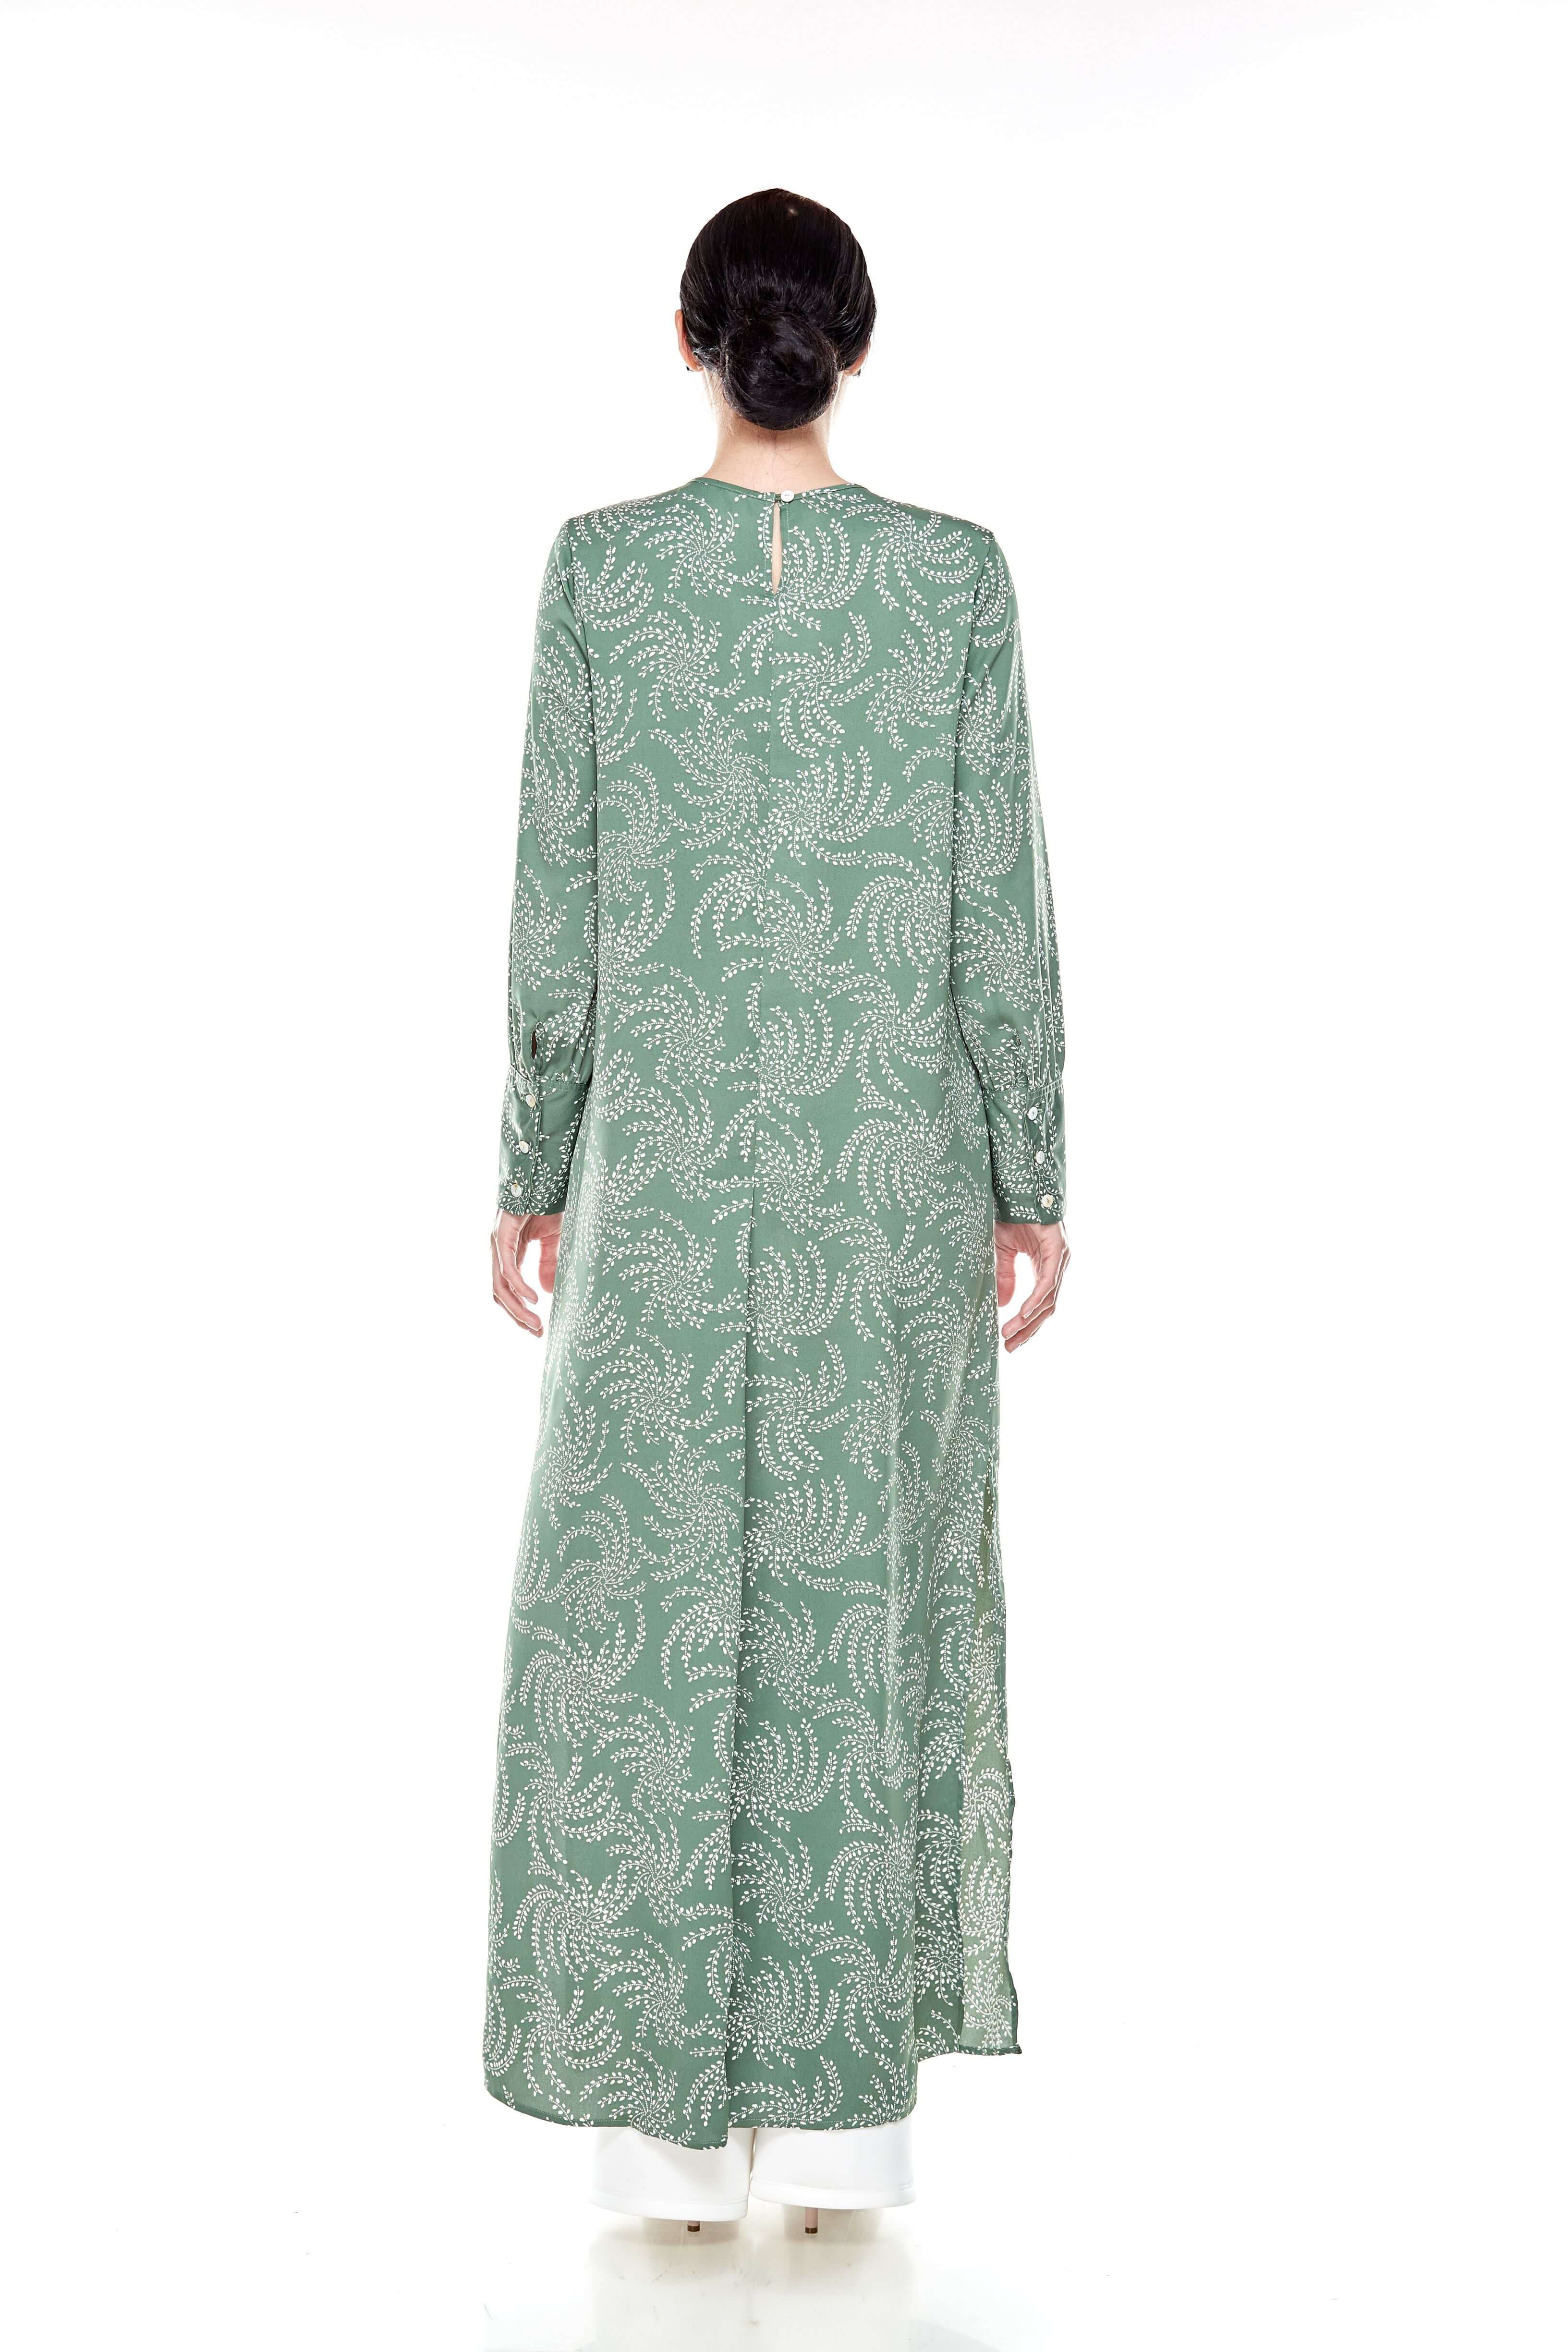 Green Printed Round Neck Dress With Slit (5)